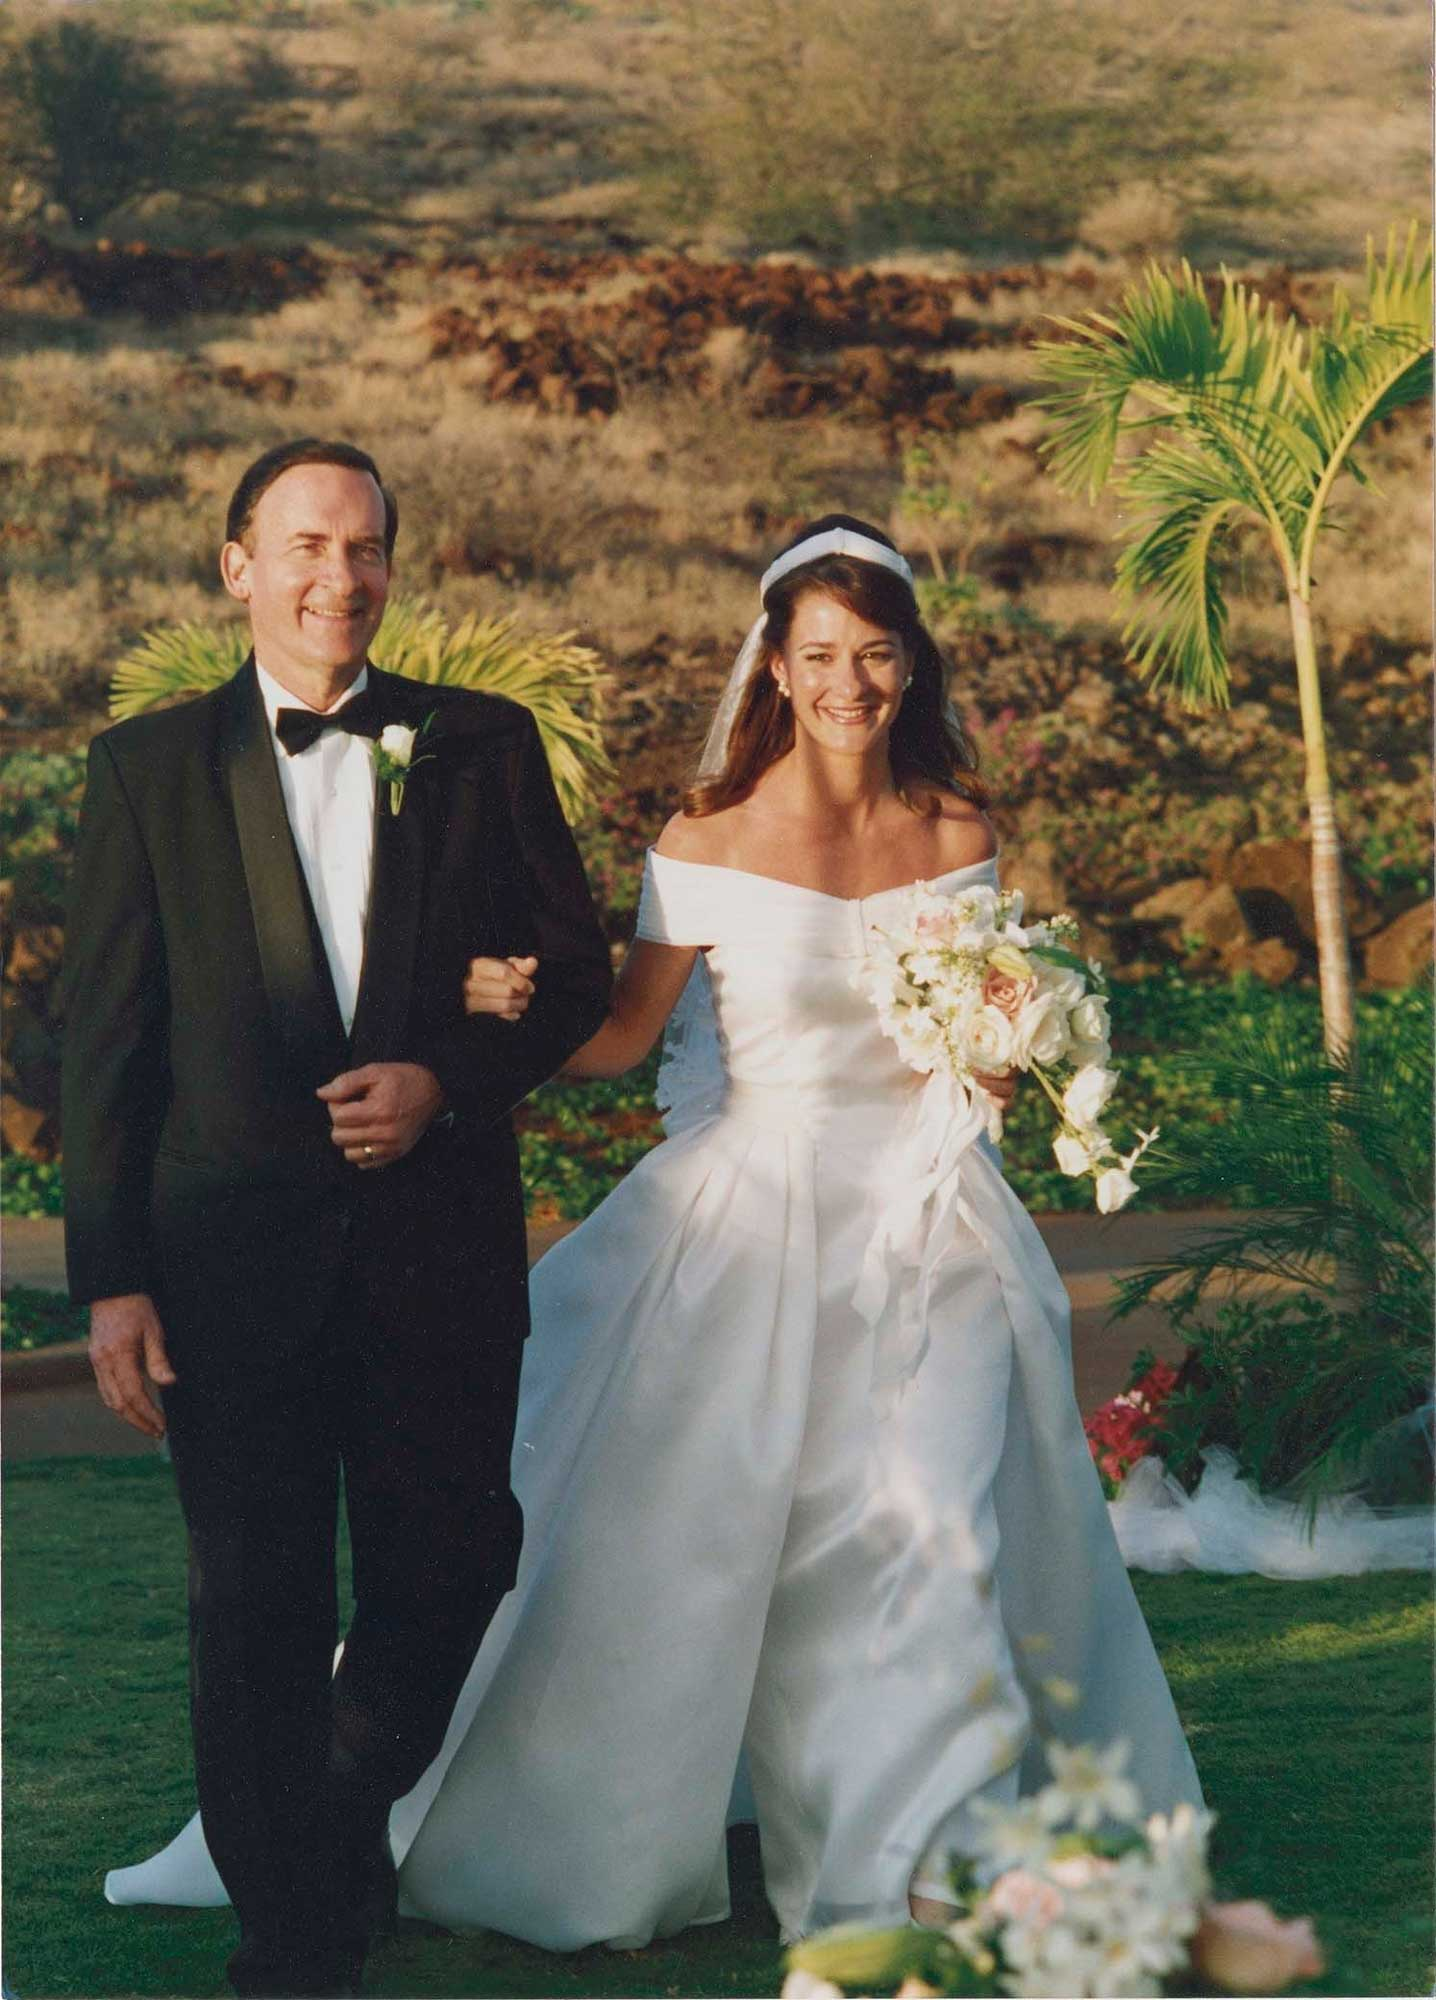 Wedding ceremony of Bill and Melinda Gates